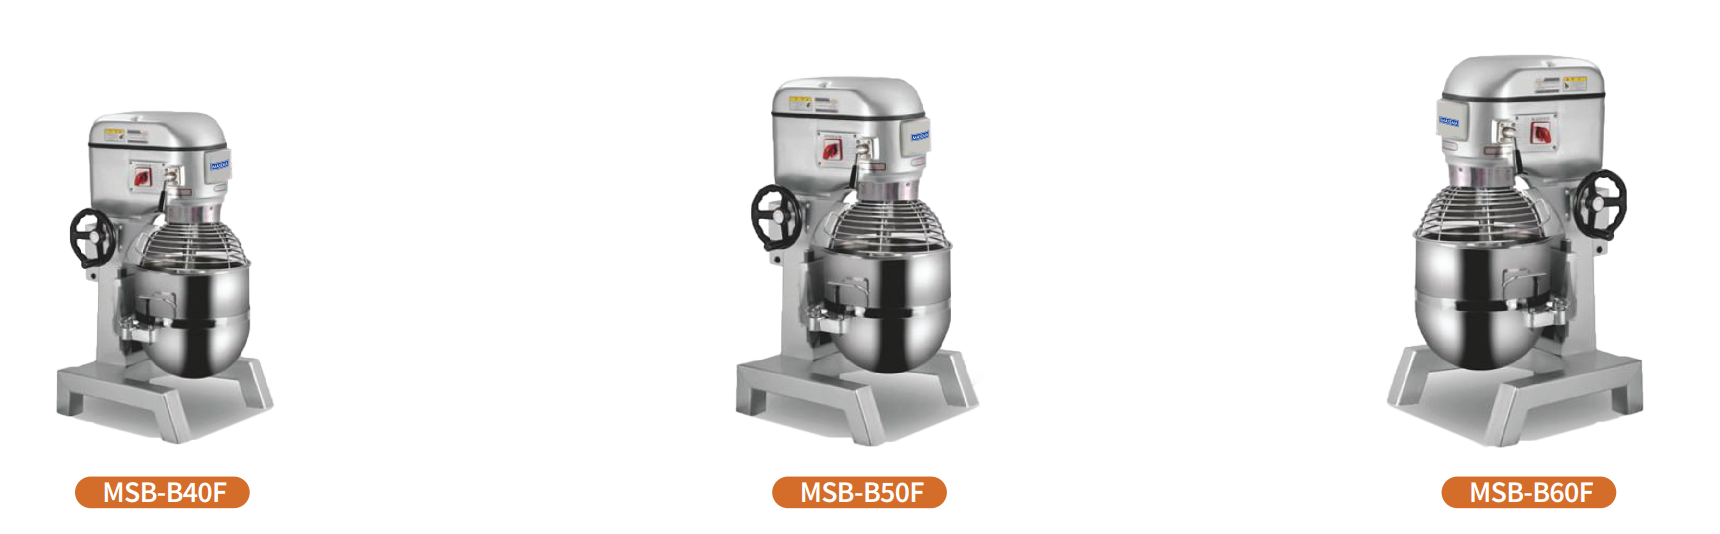 mesin planetary mixer stainless steel